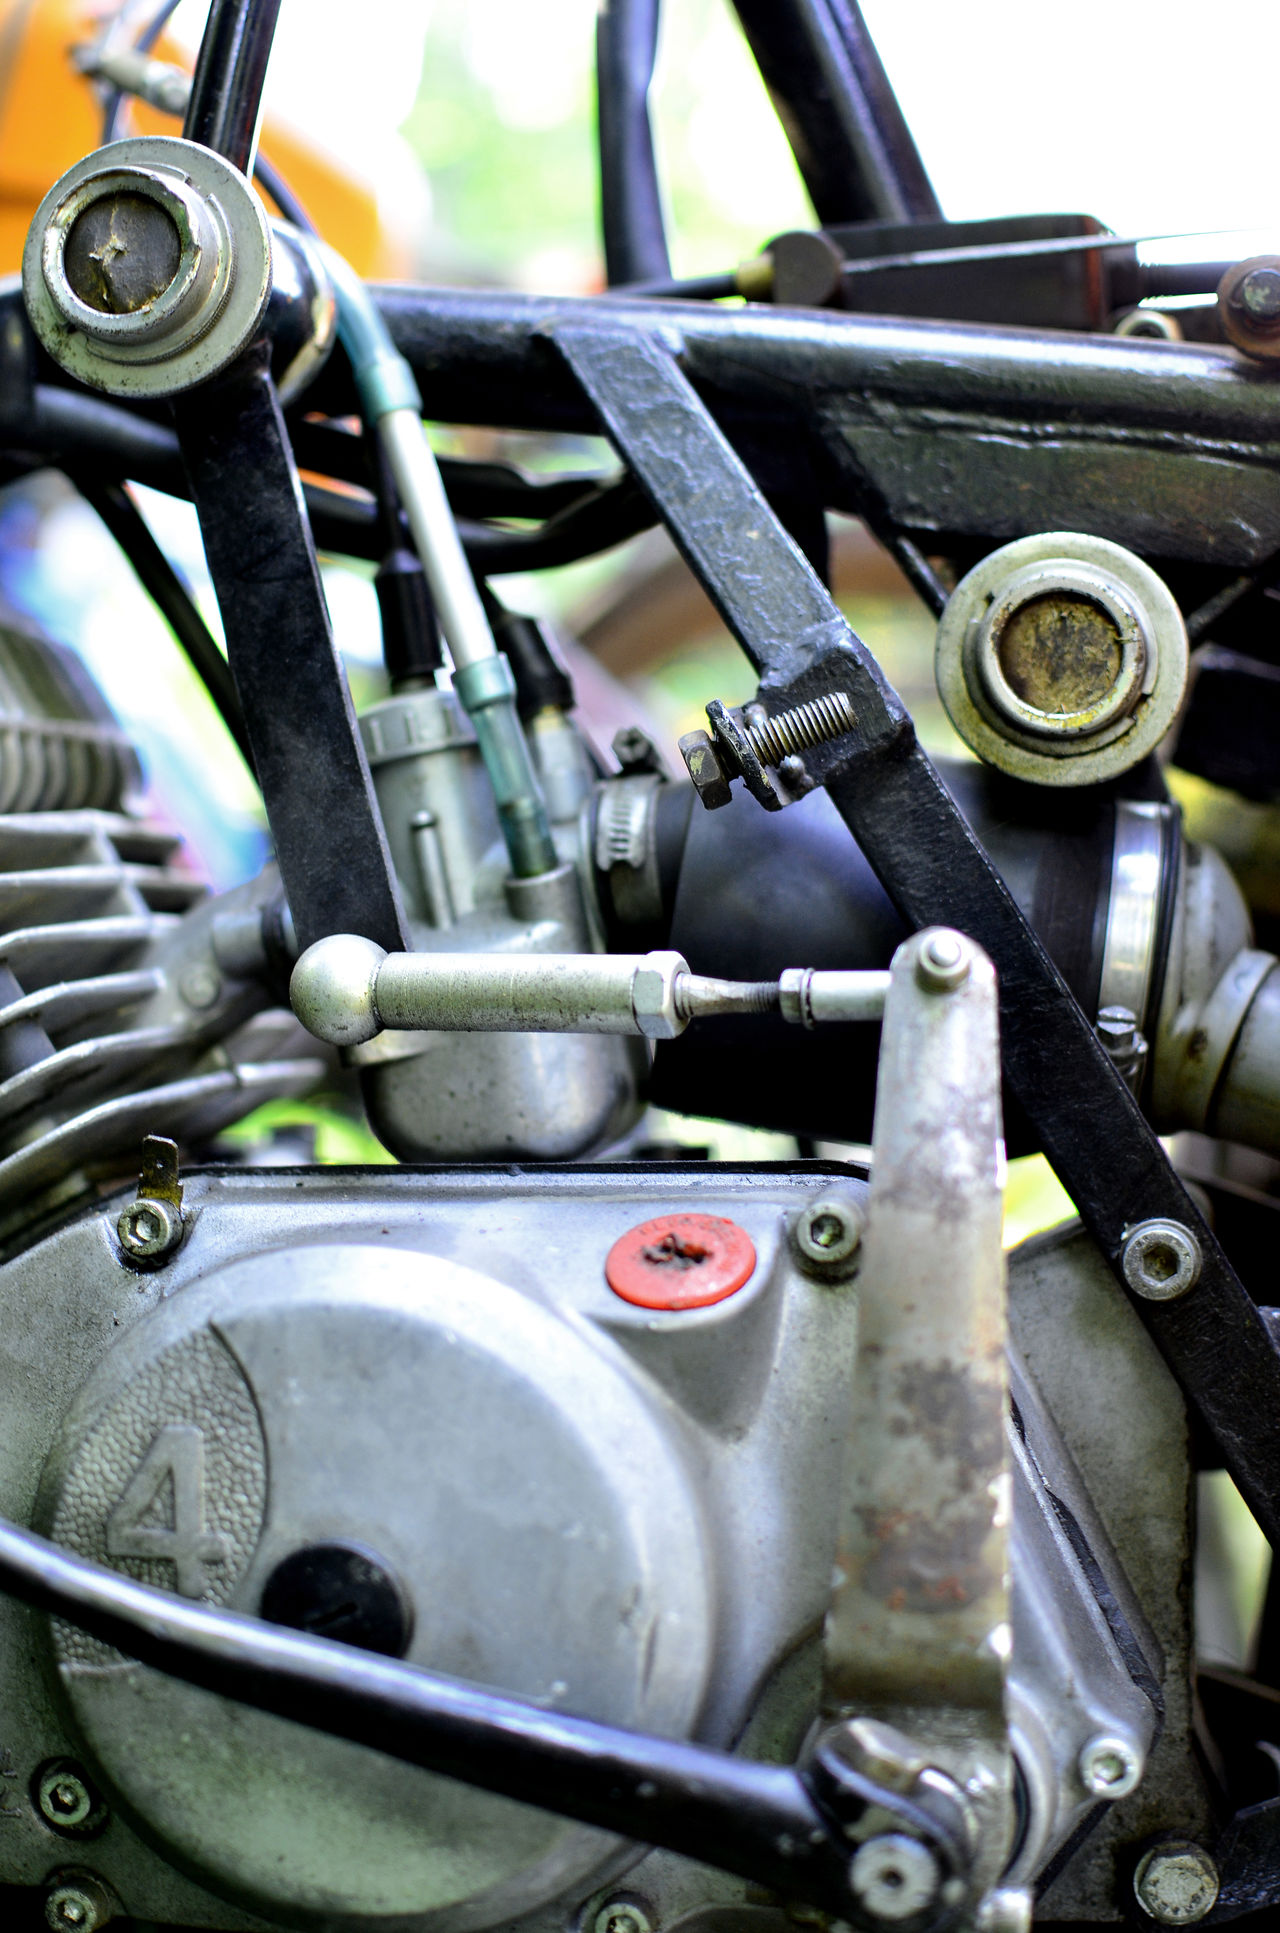 nostalgic feelings... Close Up Close-up Day Engine Gear Land Vehicle Macro Makro Mechanic Mechanical Metal Mode Of Transport Motor Motorbike Motorcycle Motorcycles No People Outdoors Steam Train Transportation